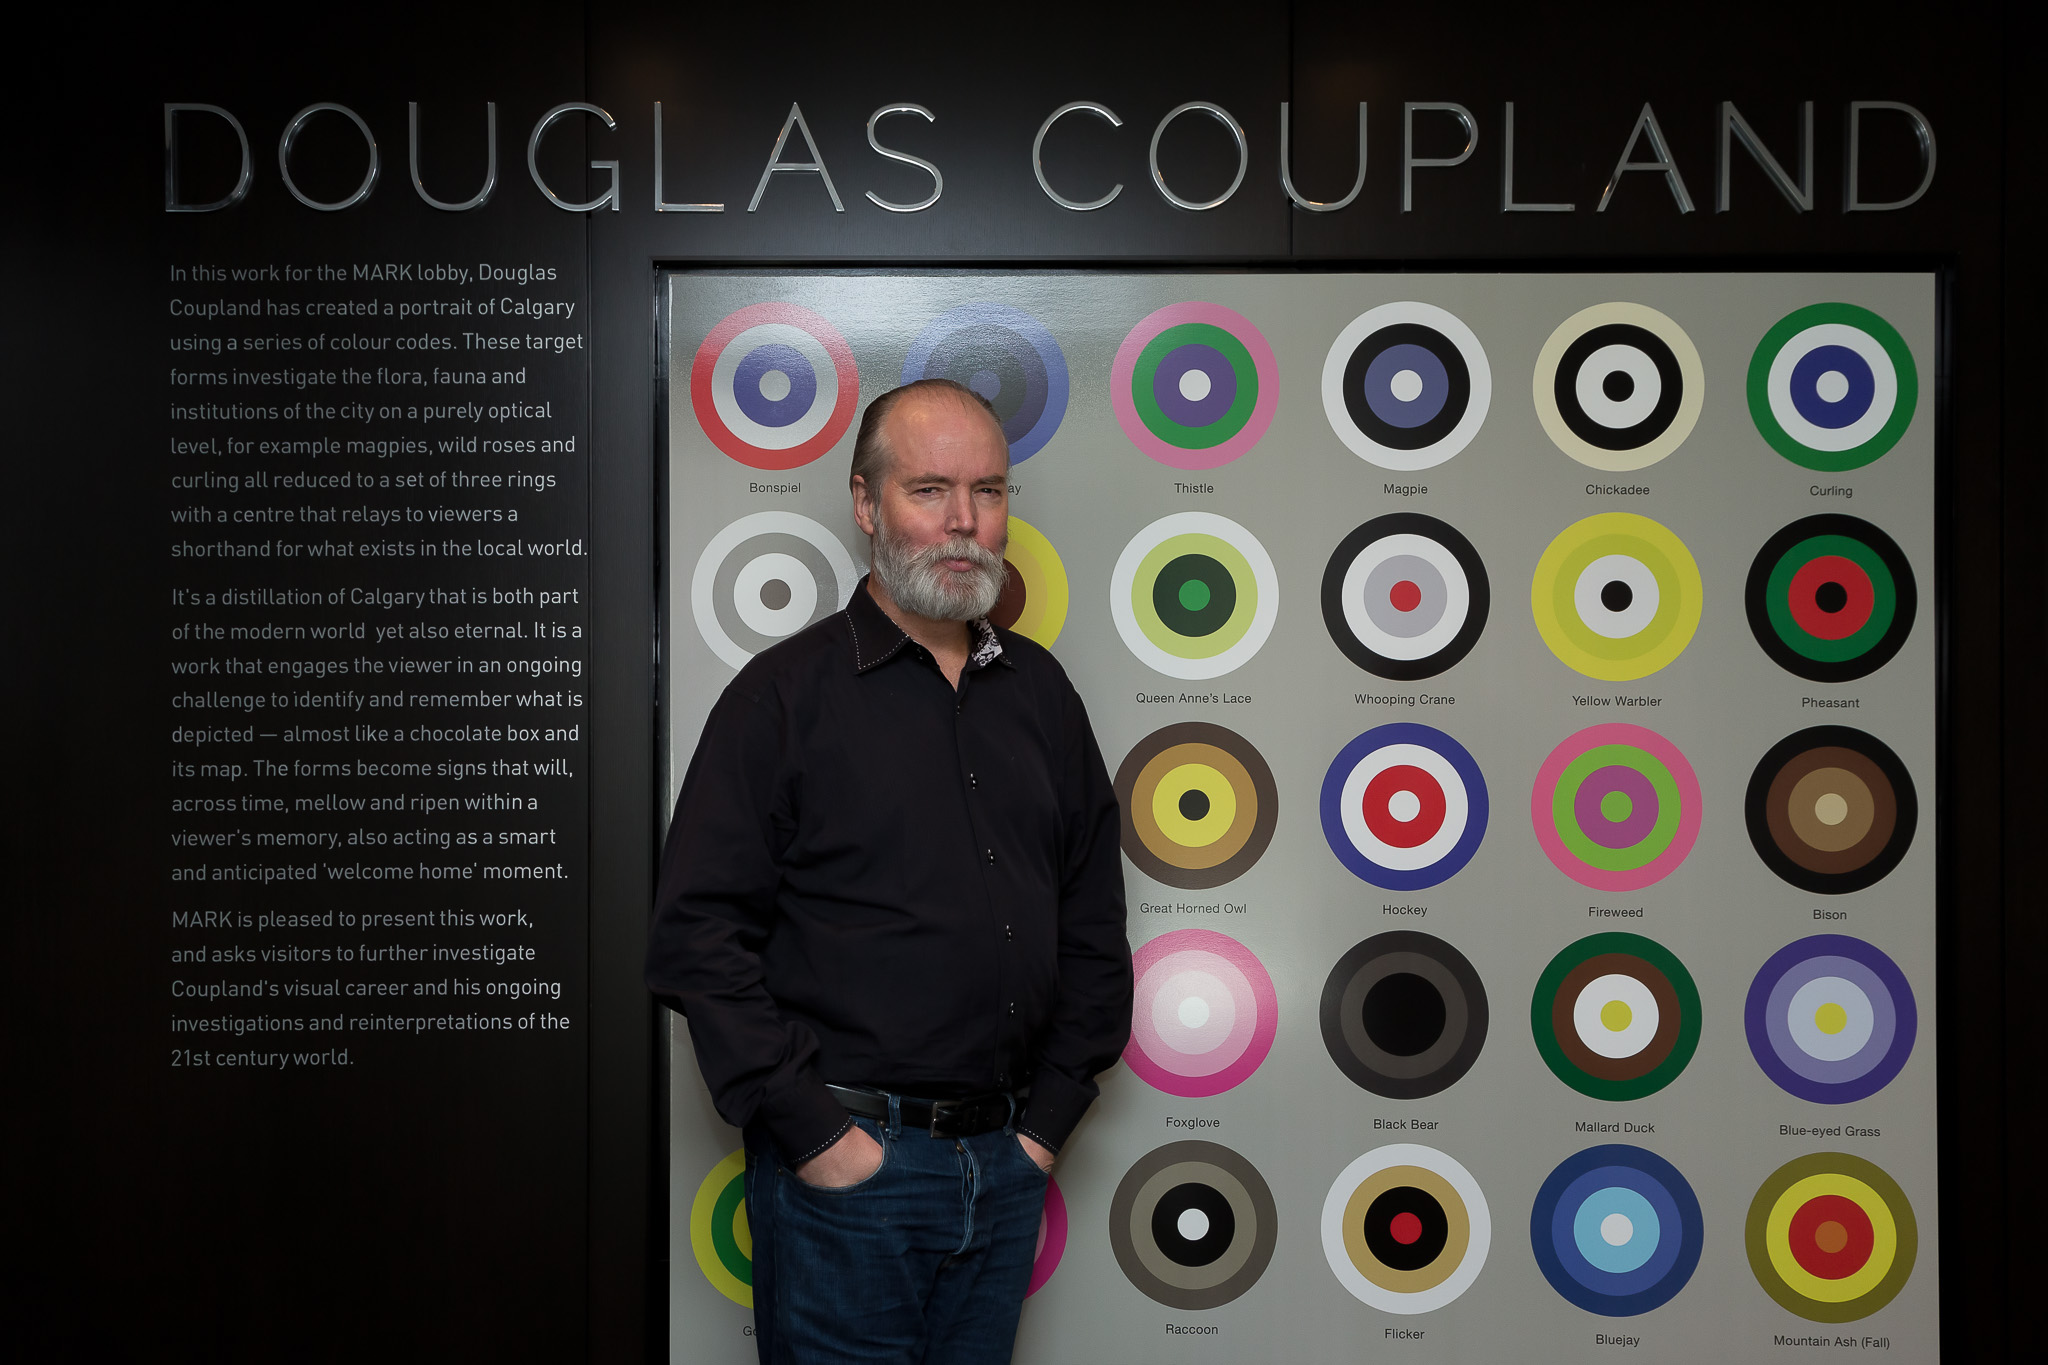 Qualex_Coupland with circle art